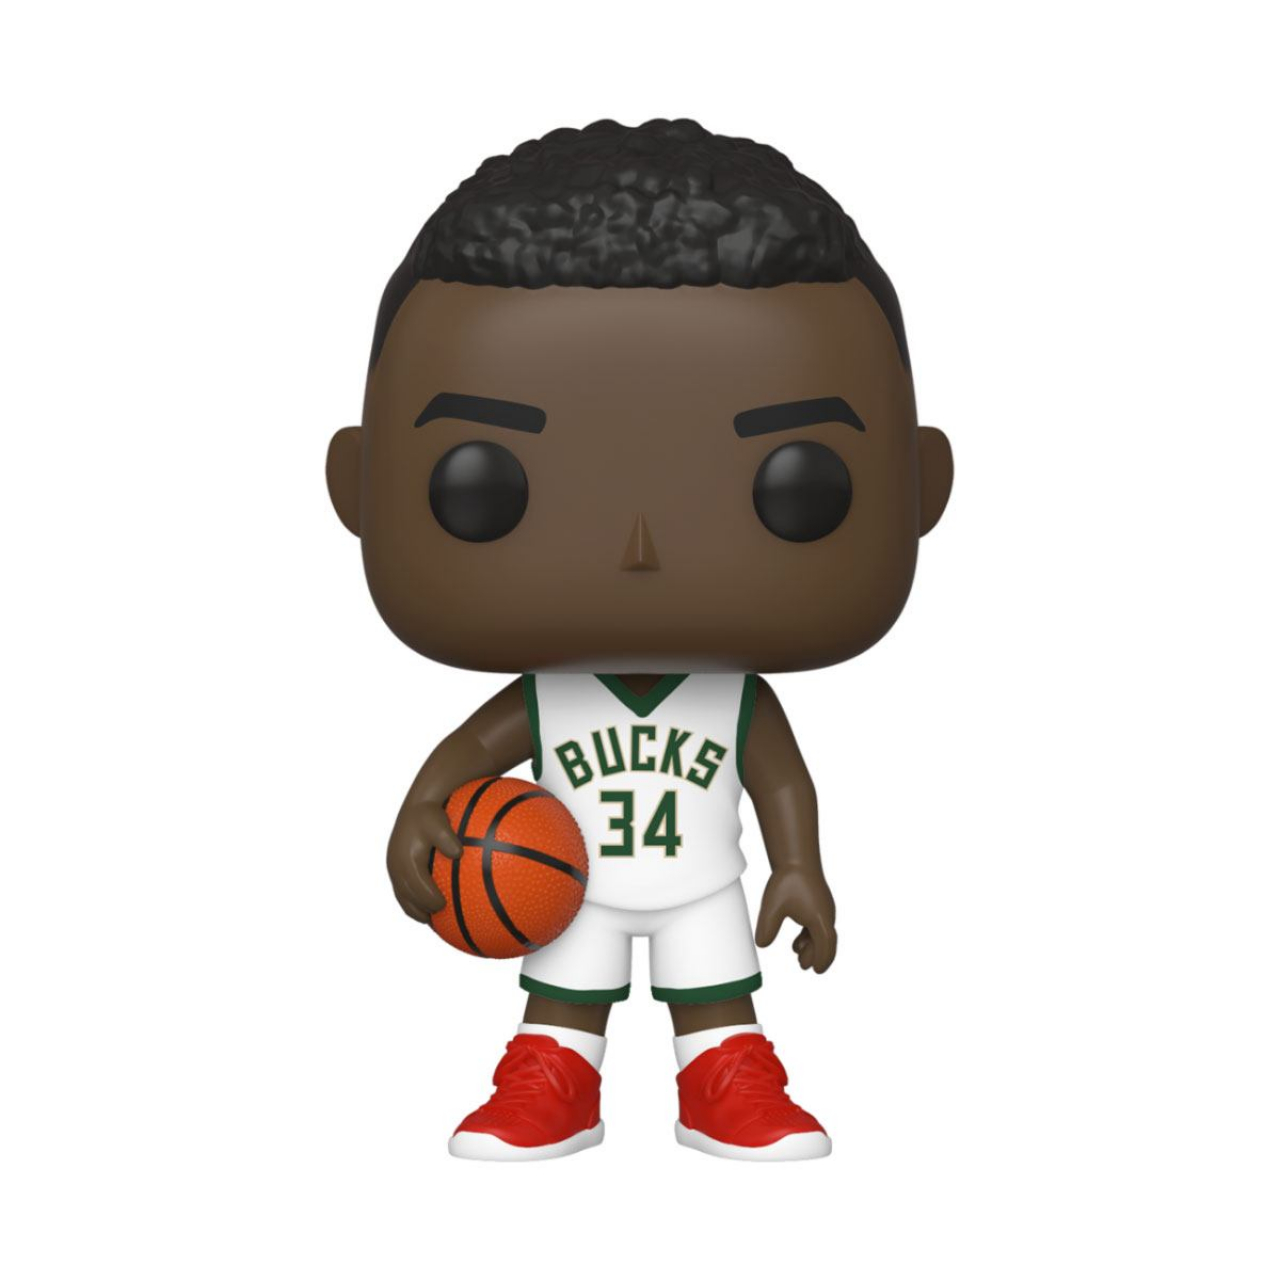 NBA POP! Sports Vinyl Figure Giannis Antetokounmpo (Bucks) 9 cm